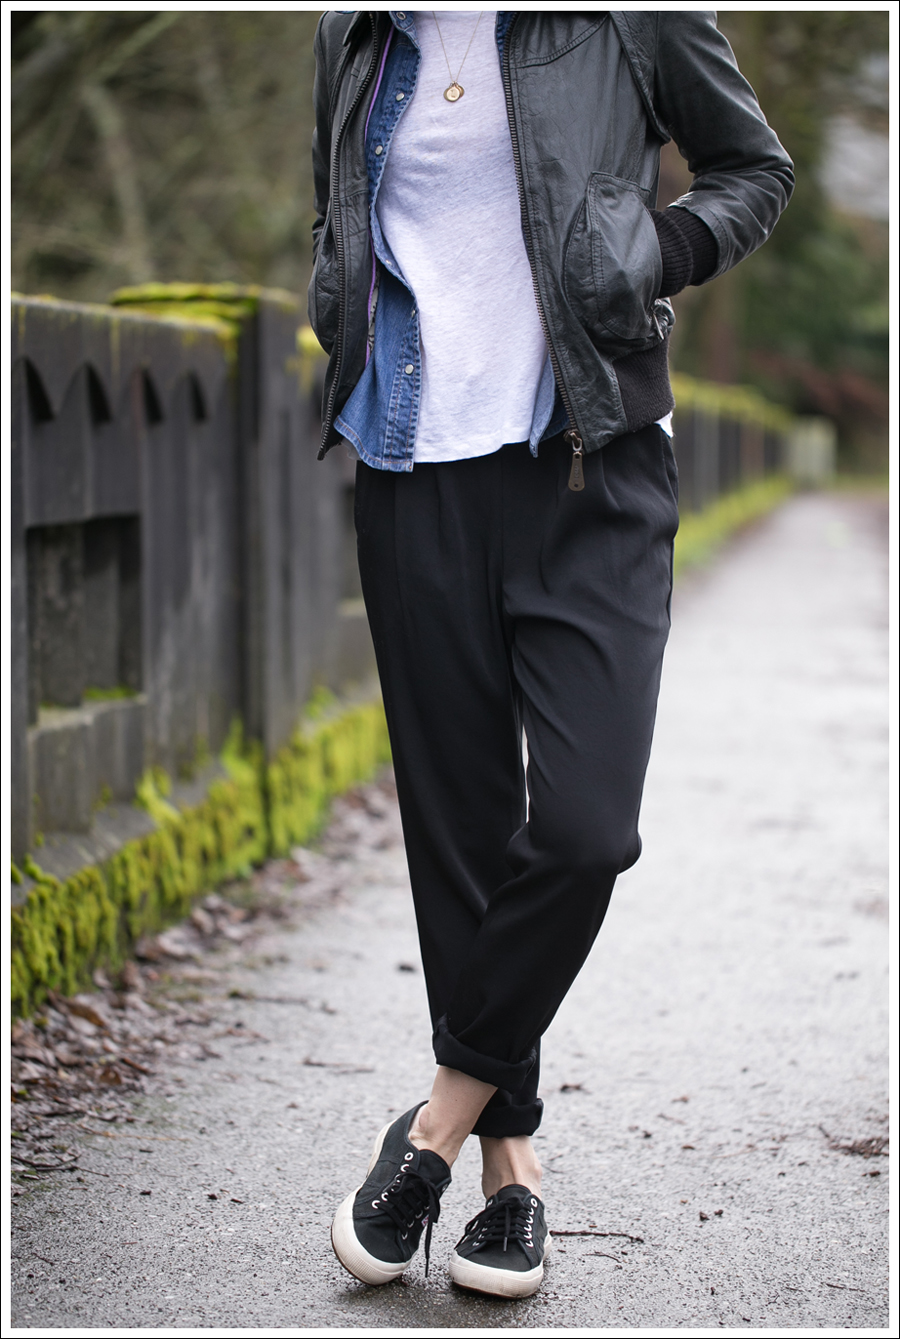 Blog Doma Leather Bomber Jacket Gap Denim Shirt Zara J Brand Irene Pant Black Superga-2